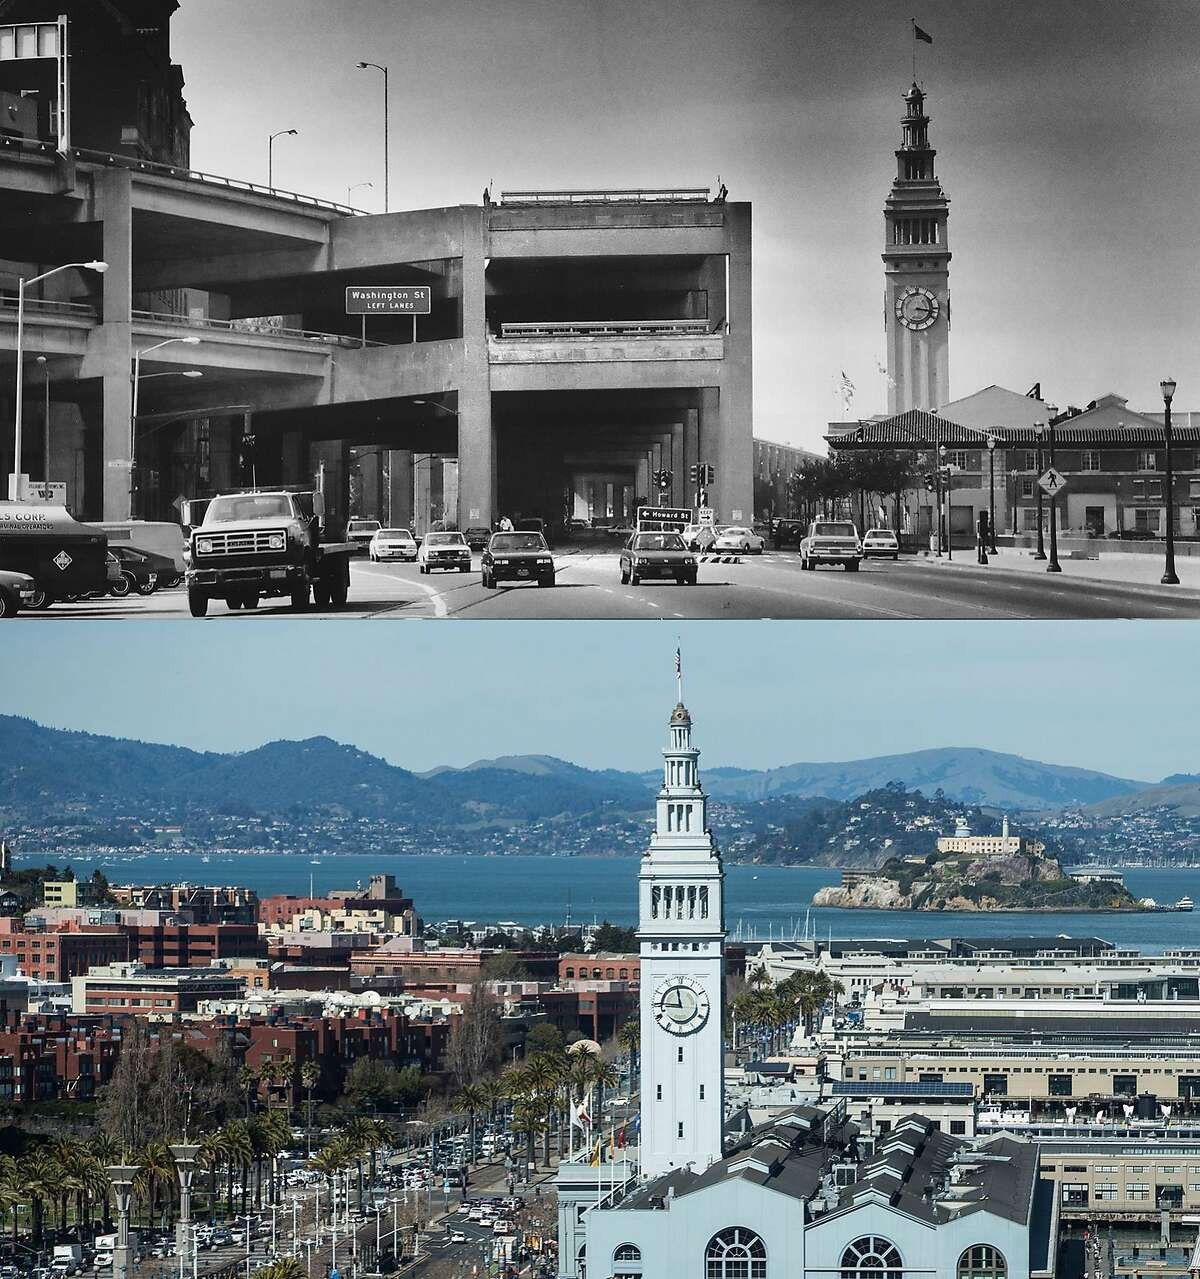 The Embarcadero Freeway, which was never finished and never connected the Golden Gate Bridge and the Bay Bridge, is seen on March 23, 1985. The Ferry Building photographed Tuesday, March 6, 2018 in San Francisco, Calif.